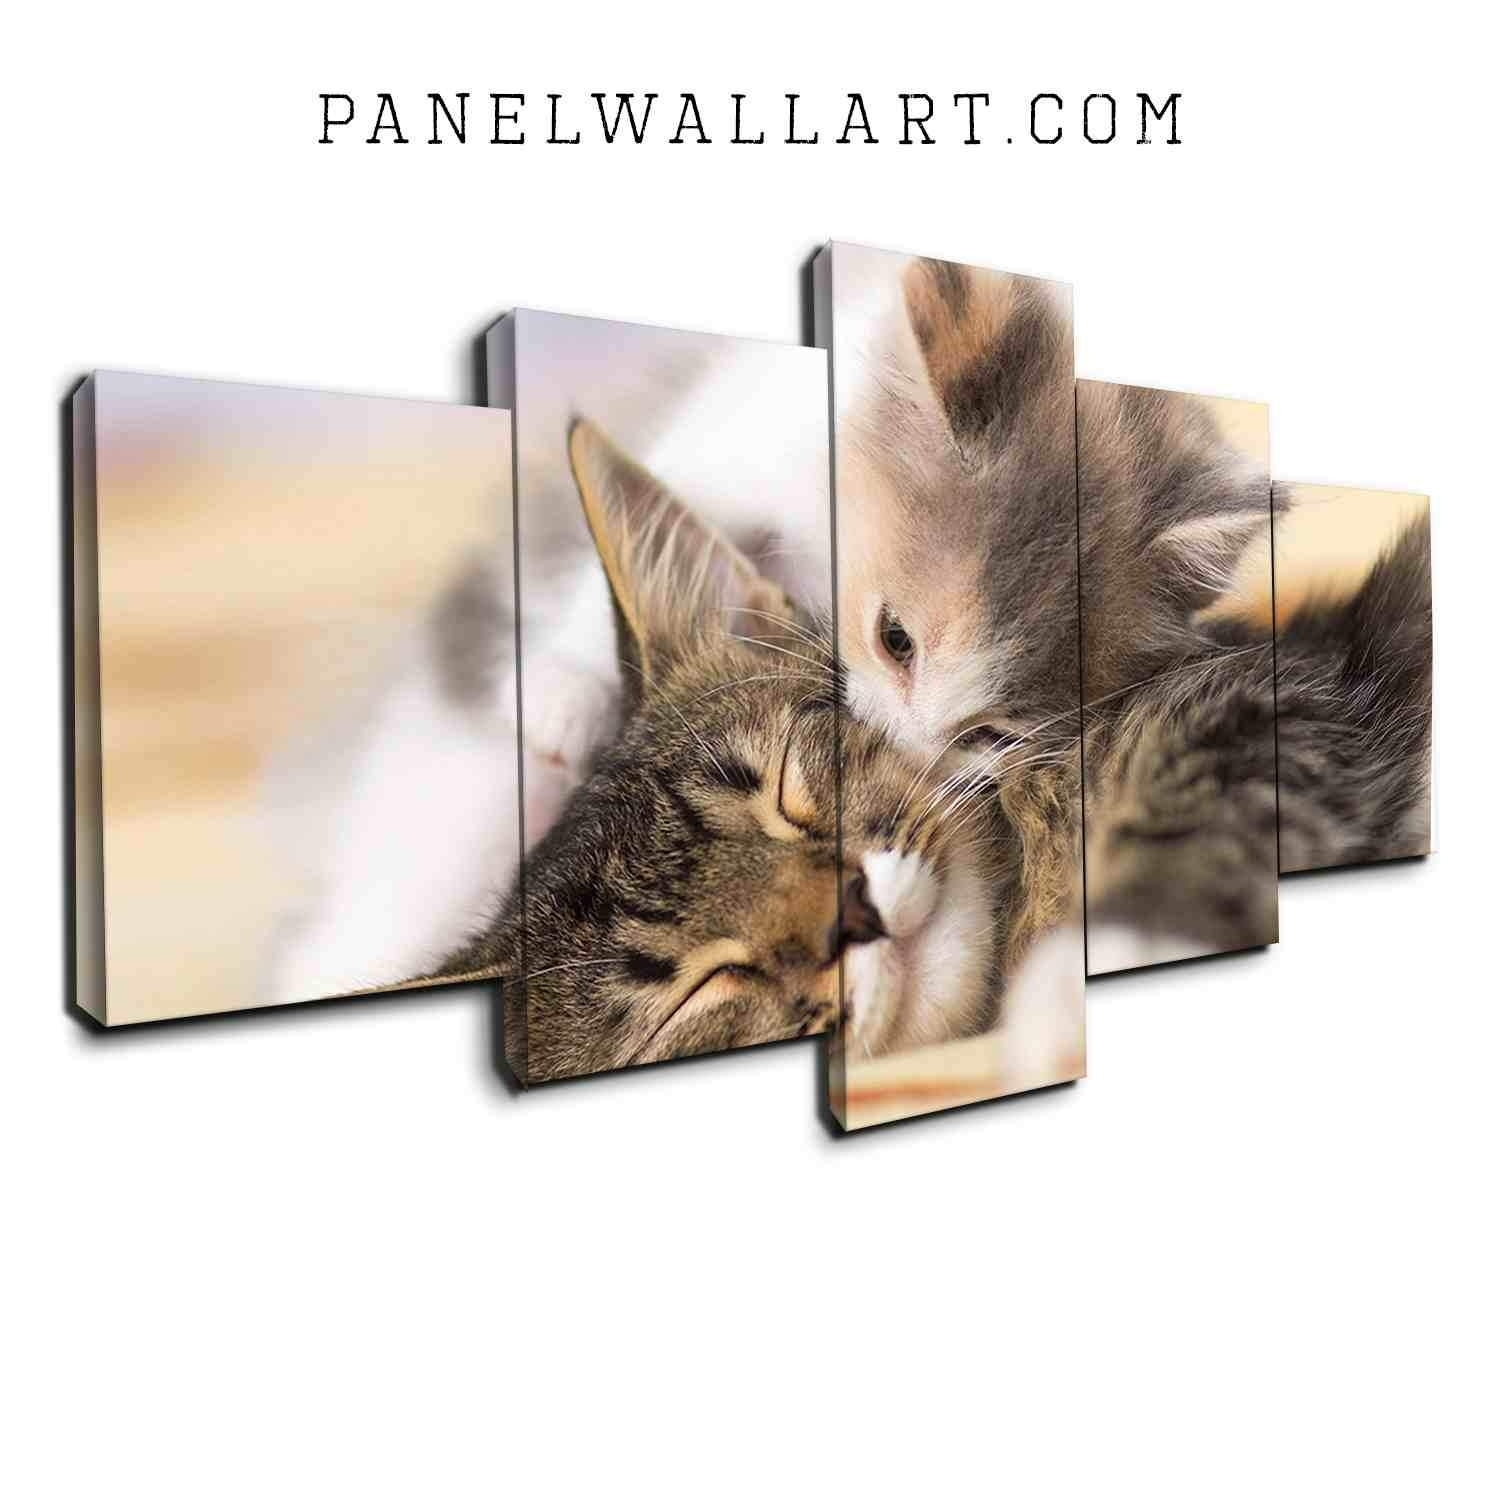 5 Panel Canvas Wall Art | Kissing Kitten On Bed | Panelwallart with Most Up-to-Date Cat Canvas Wall Art